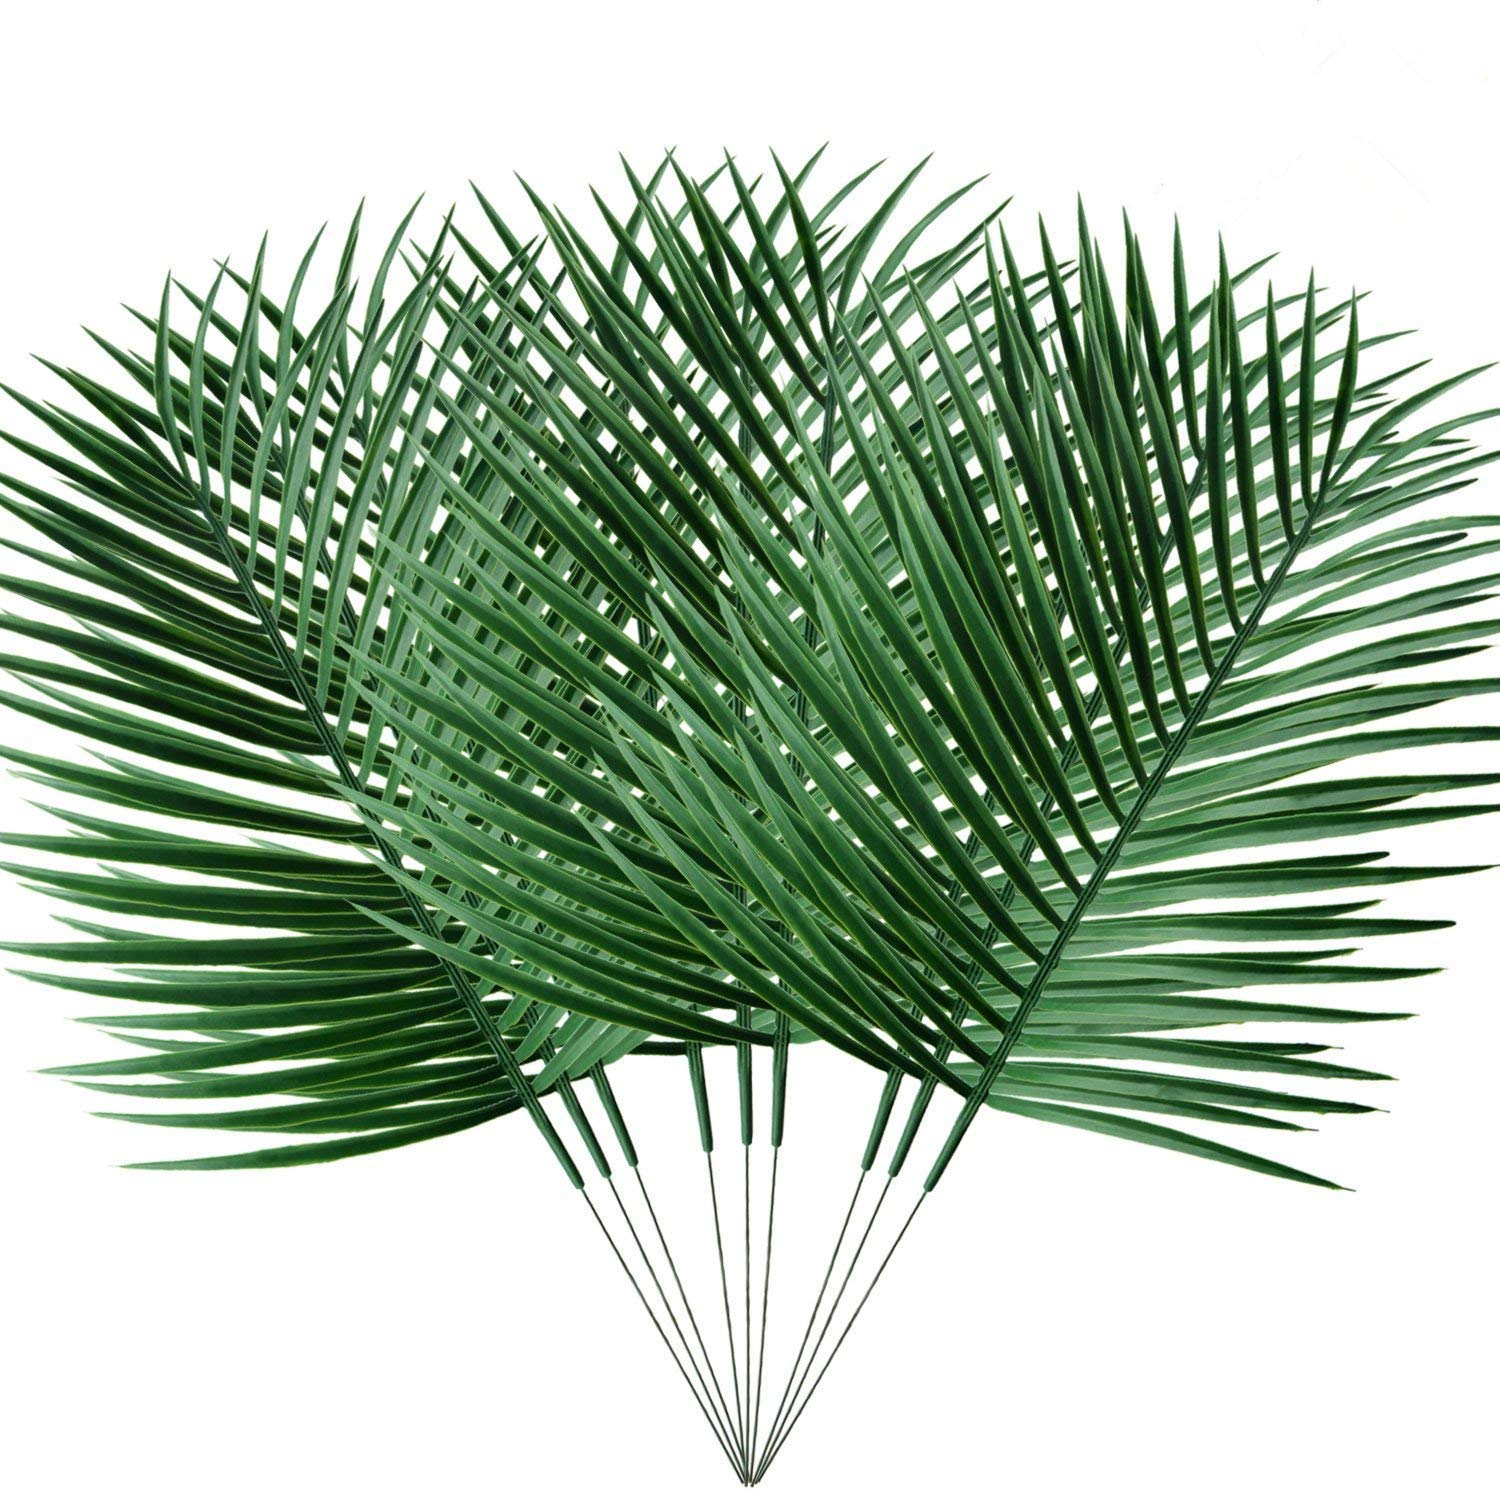 pannow 6パック人工Tropical Palm Plant Leaves、FAKEフェイクPalm Leaves ForホームキッチンパーティーSupplies Tropical Leaves Decorations 9 Pack グリーン XA818A41-144-1607543181 B07D68P94N  9 Pack